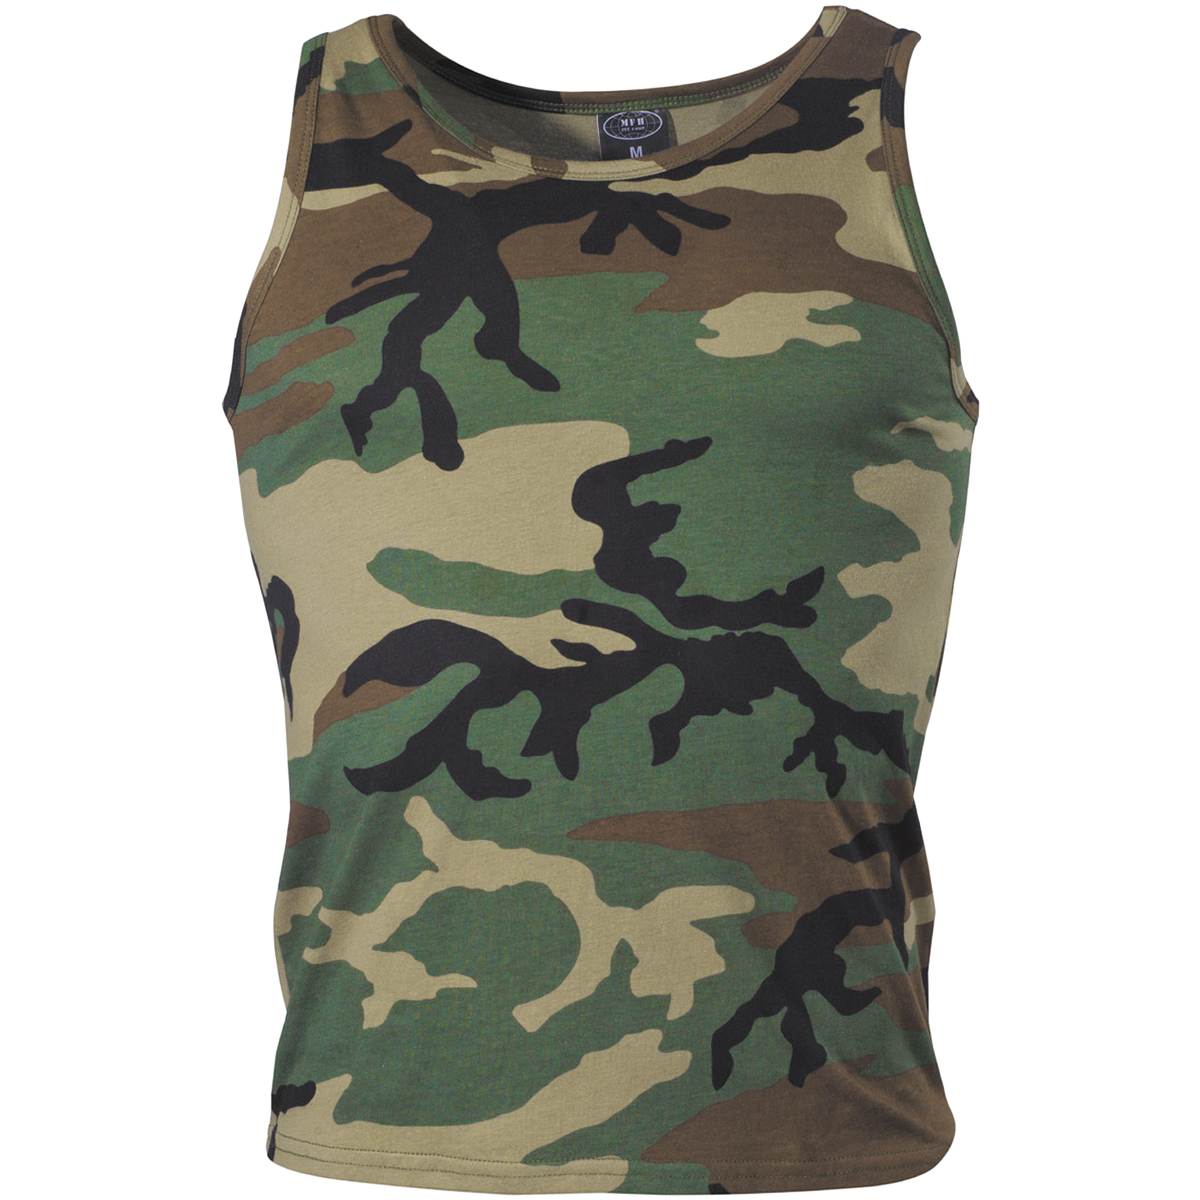 ARMY-COMBAT-TANK-TOP-MILITARY-CADET-MENS-VEST-COTTON-SINGLET-WOODLAND-CAMO-S-XXL